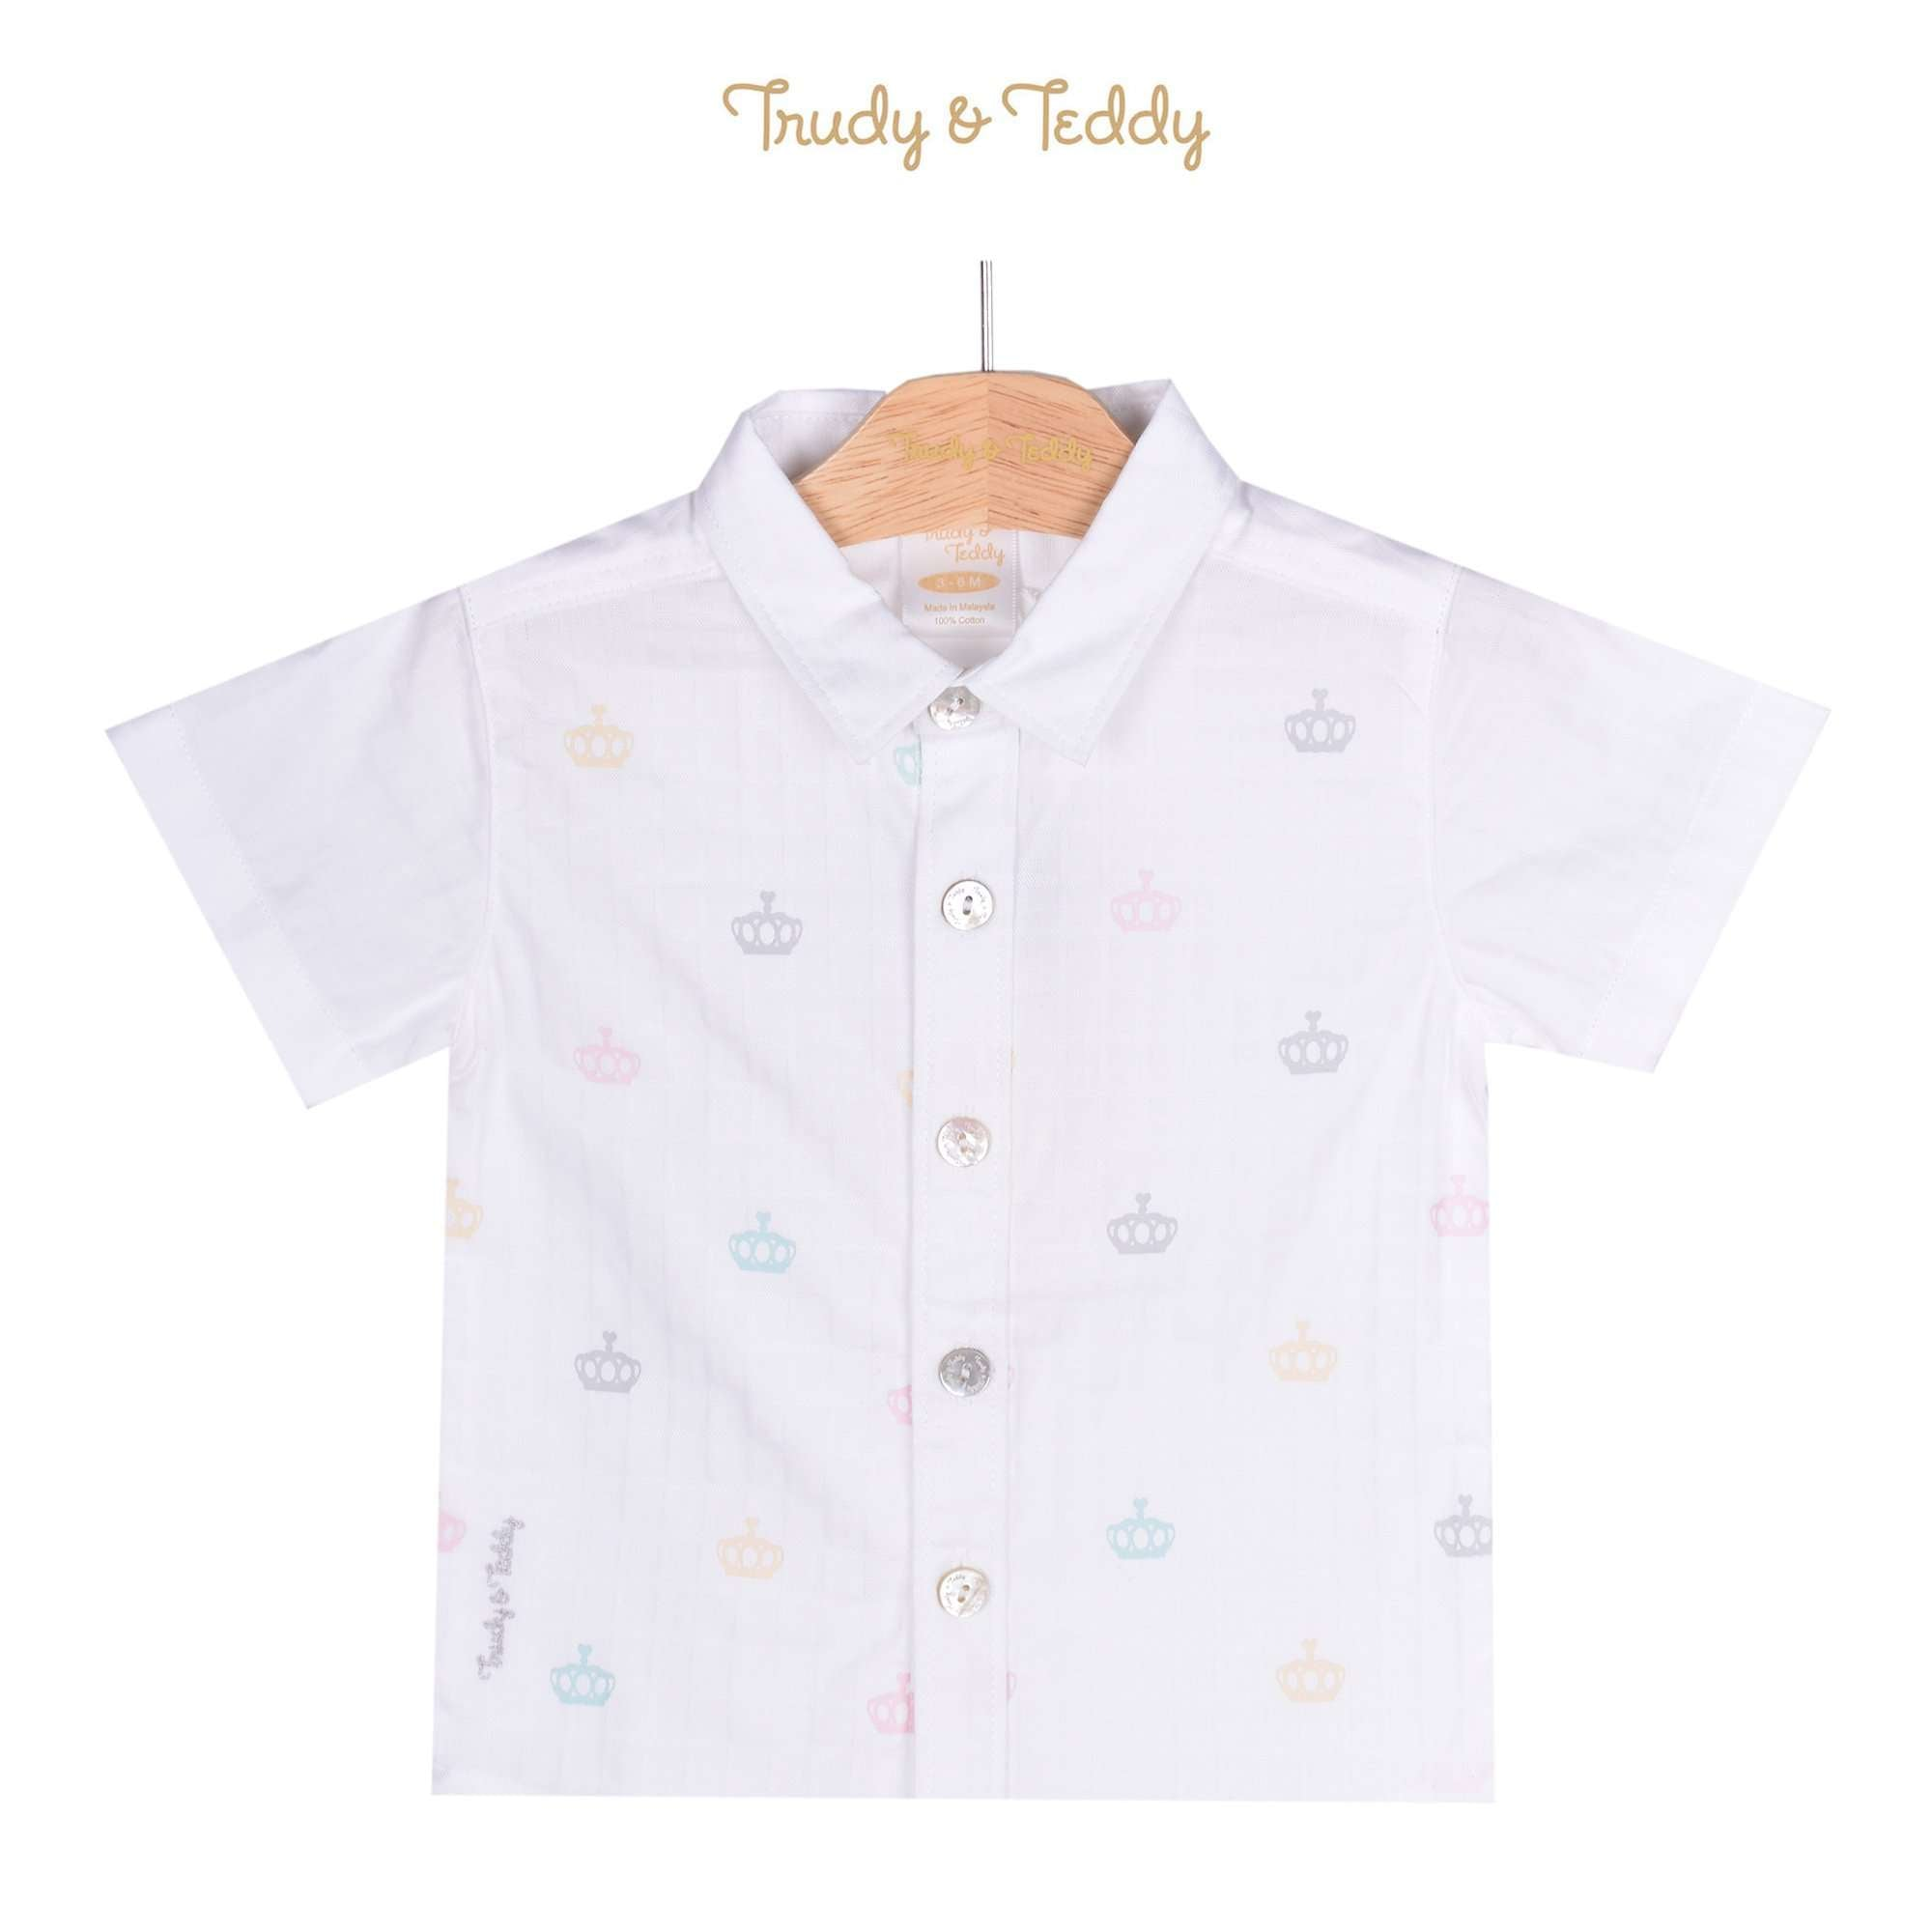 Trudy & Teddy Baby Boy Short Sleeve Shirt 810112-142 : Buy Trudy & Teddy online at CMG.MY